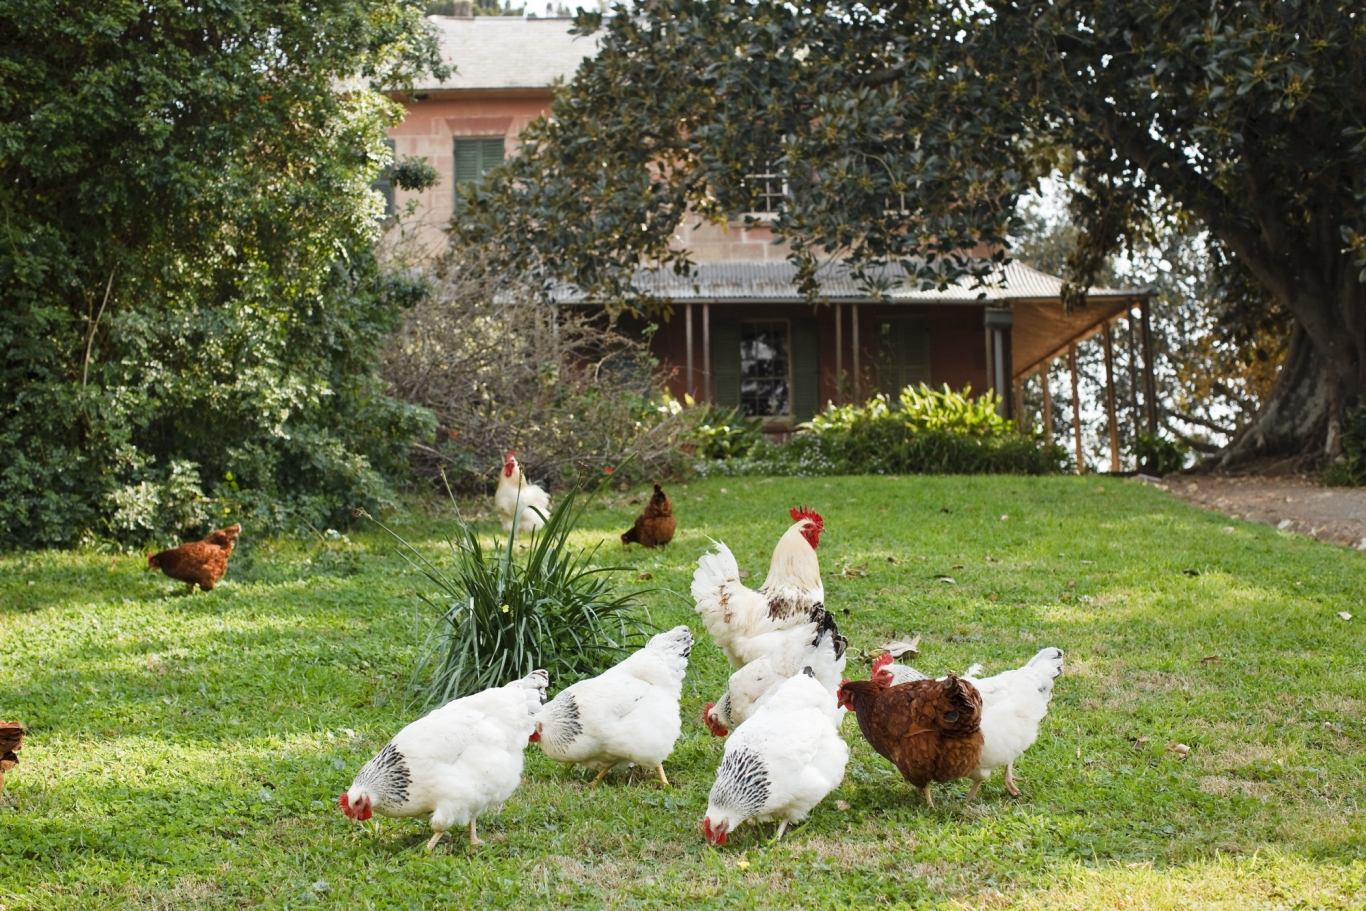 Outside view of the Main House at Rouse Hill House and Farm. Group of chickens in the garden